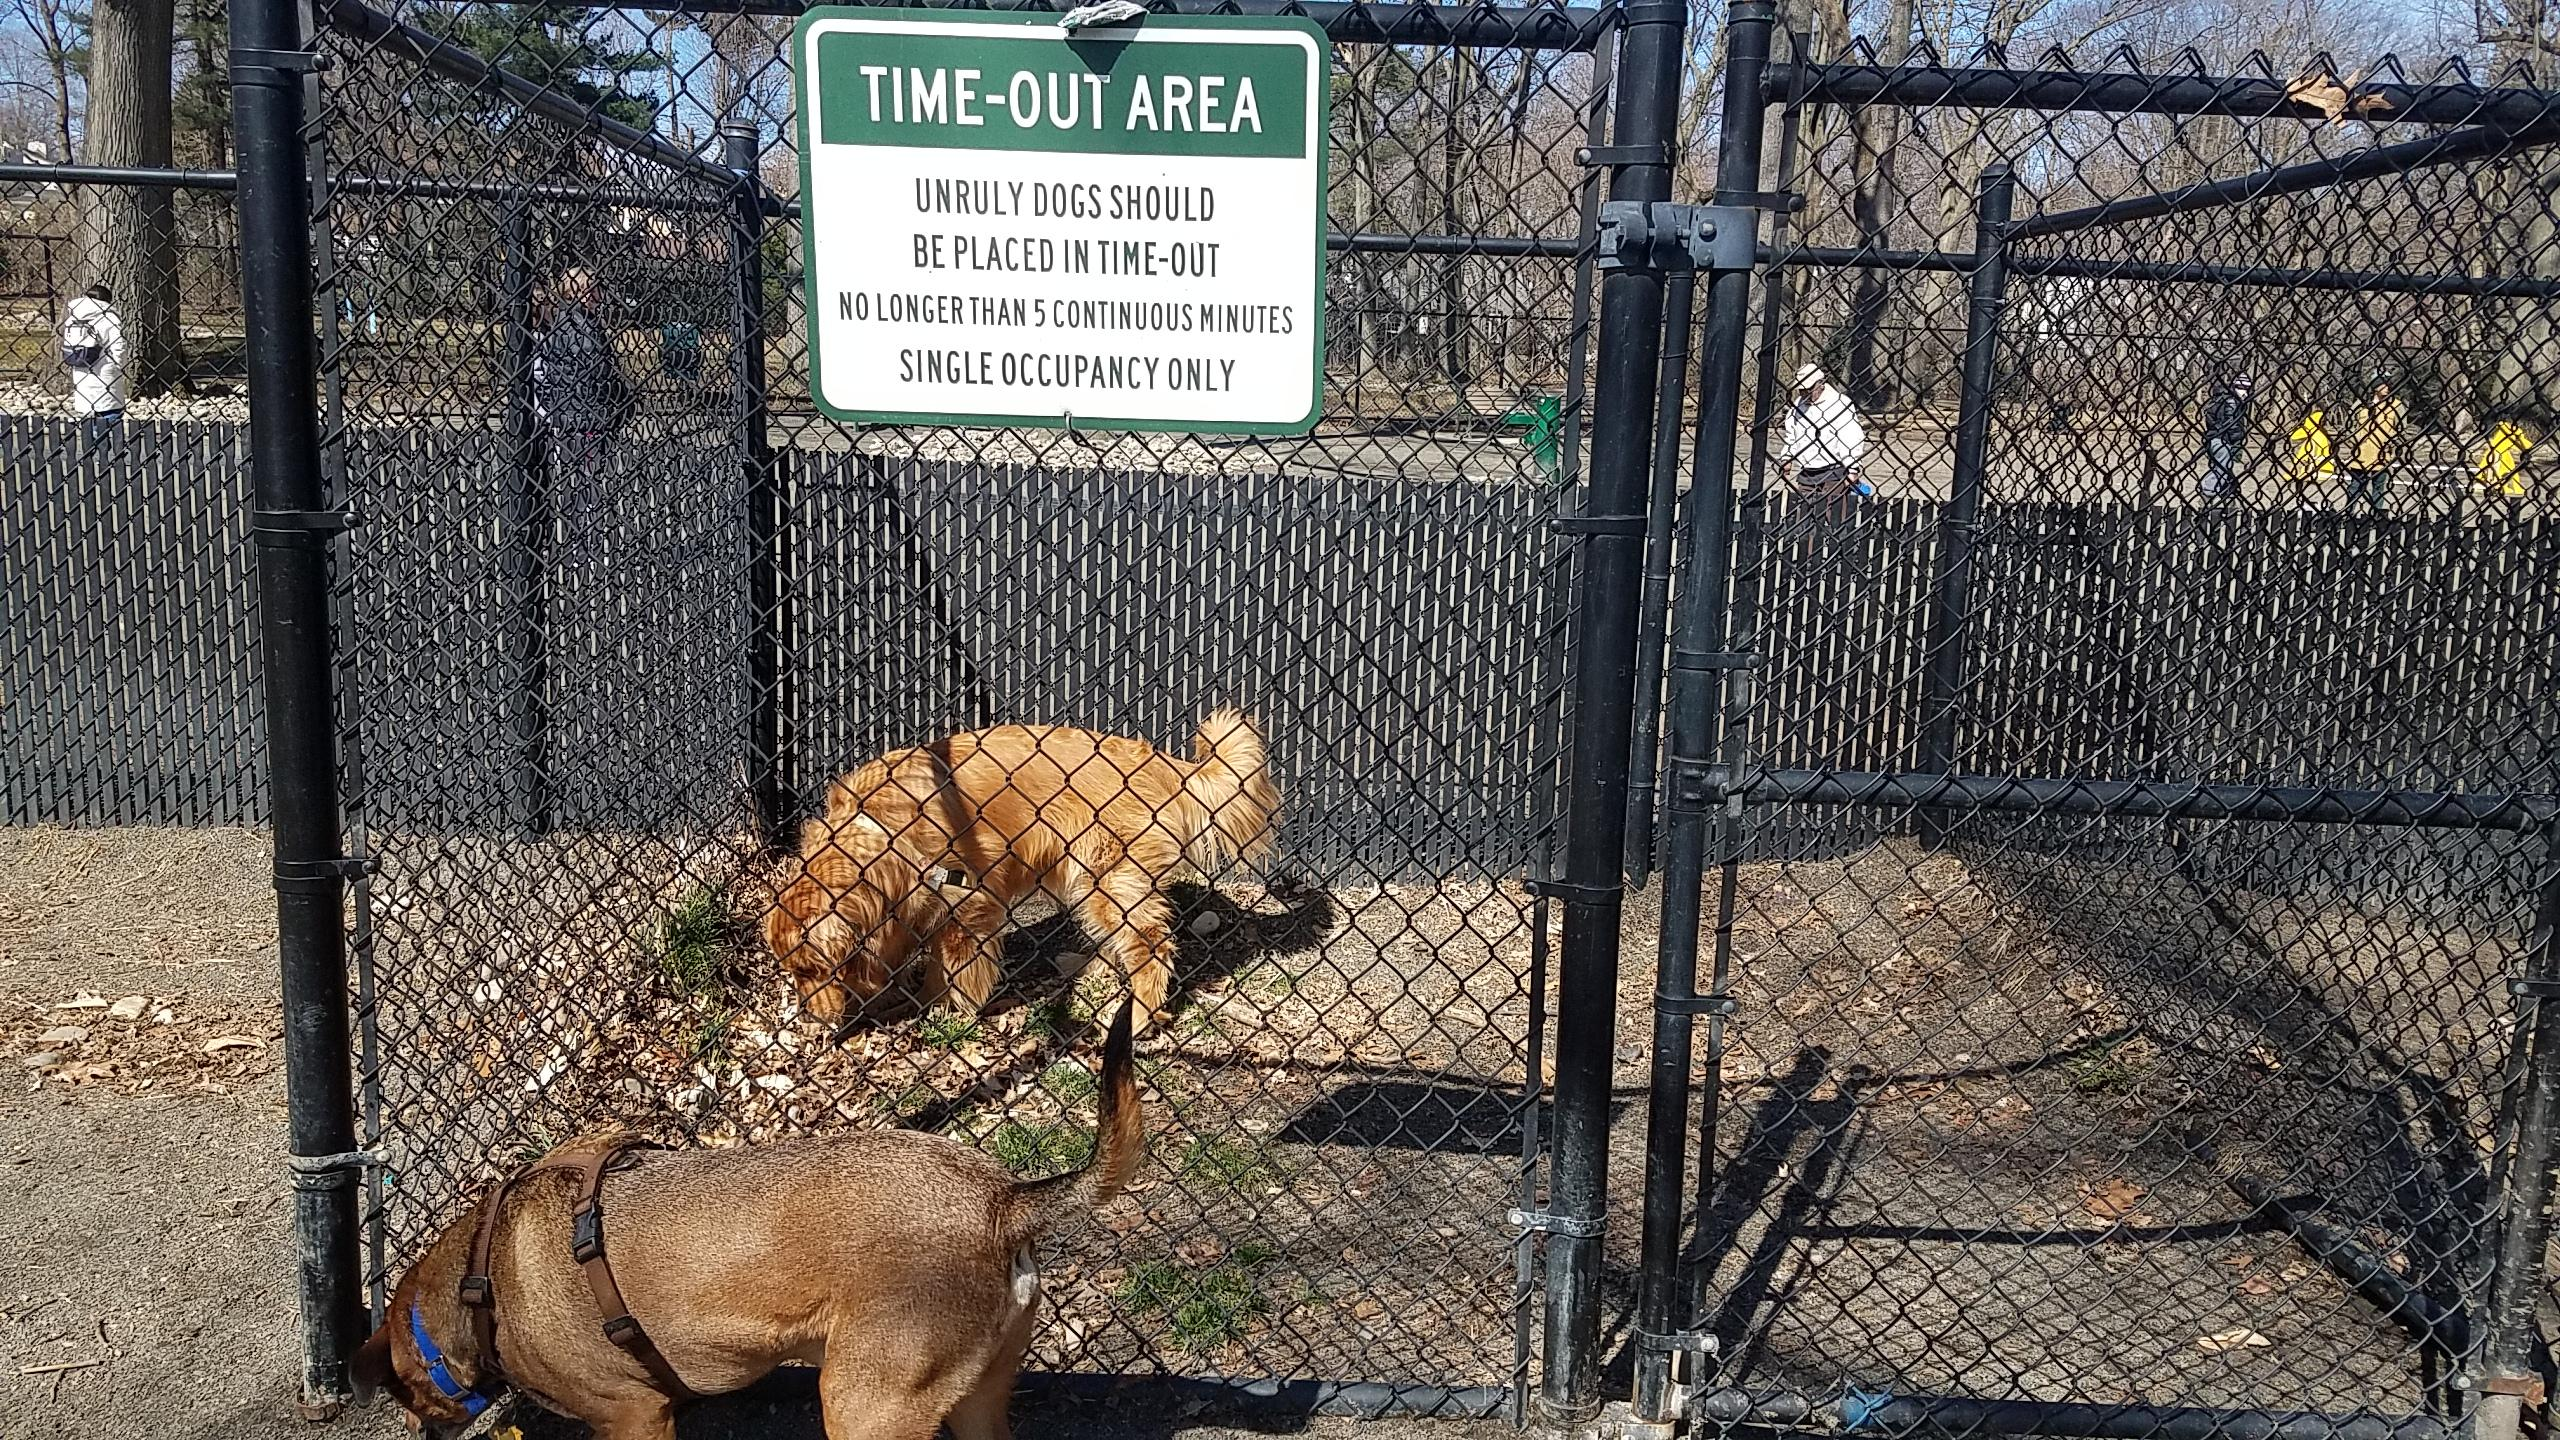 Sas Bad 24 This Dog Park Has A